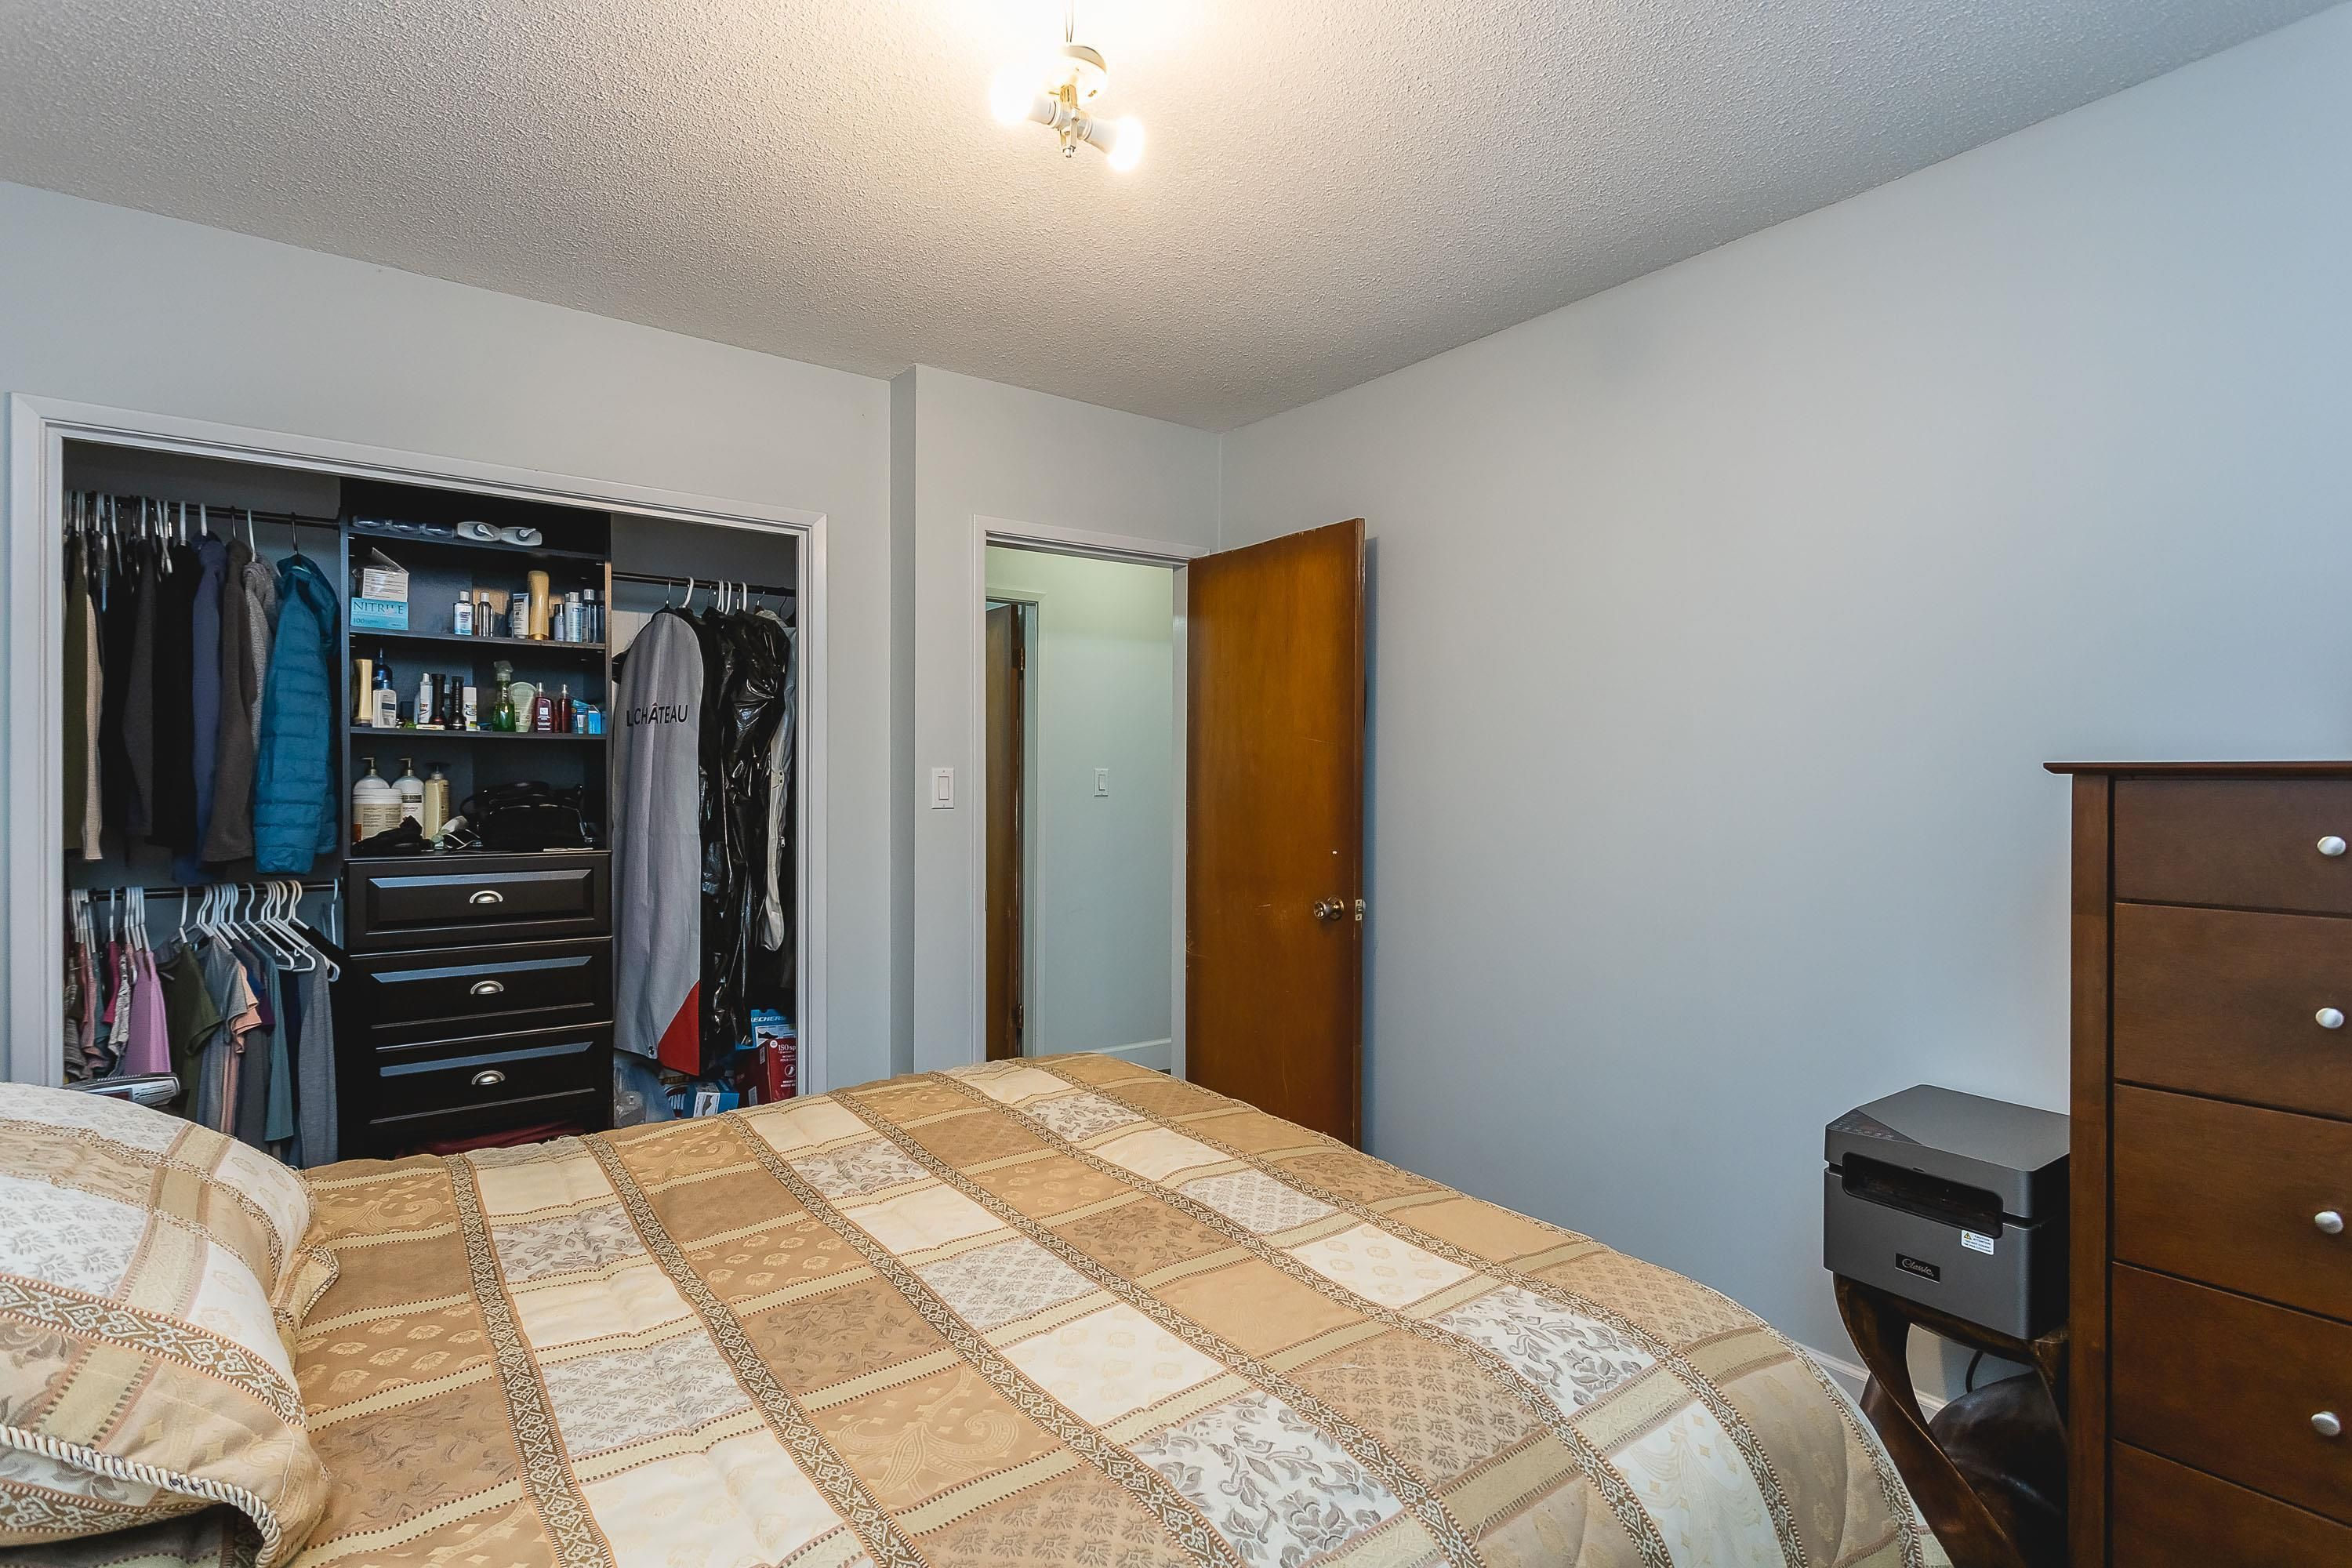 Photo 4: Photos: 3260 ULSTER Street in Port Coquitlam: Lincoln Park PQ House for sale : MLS®# R2613283